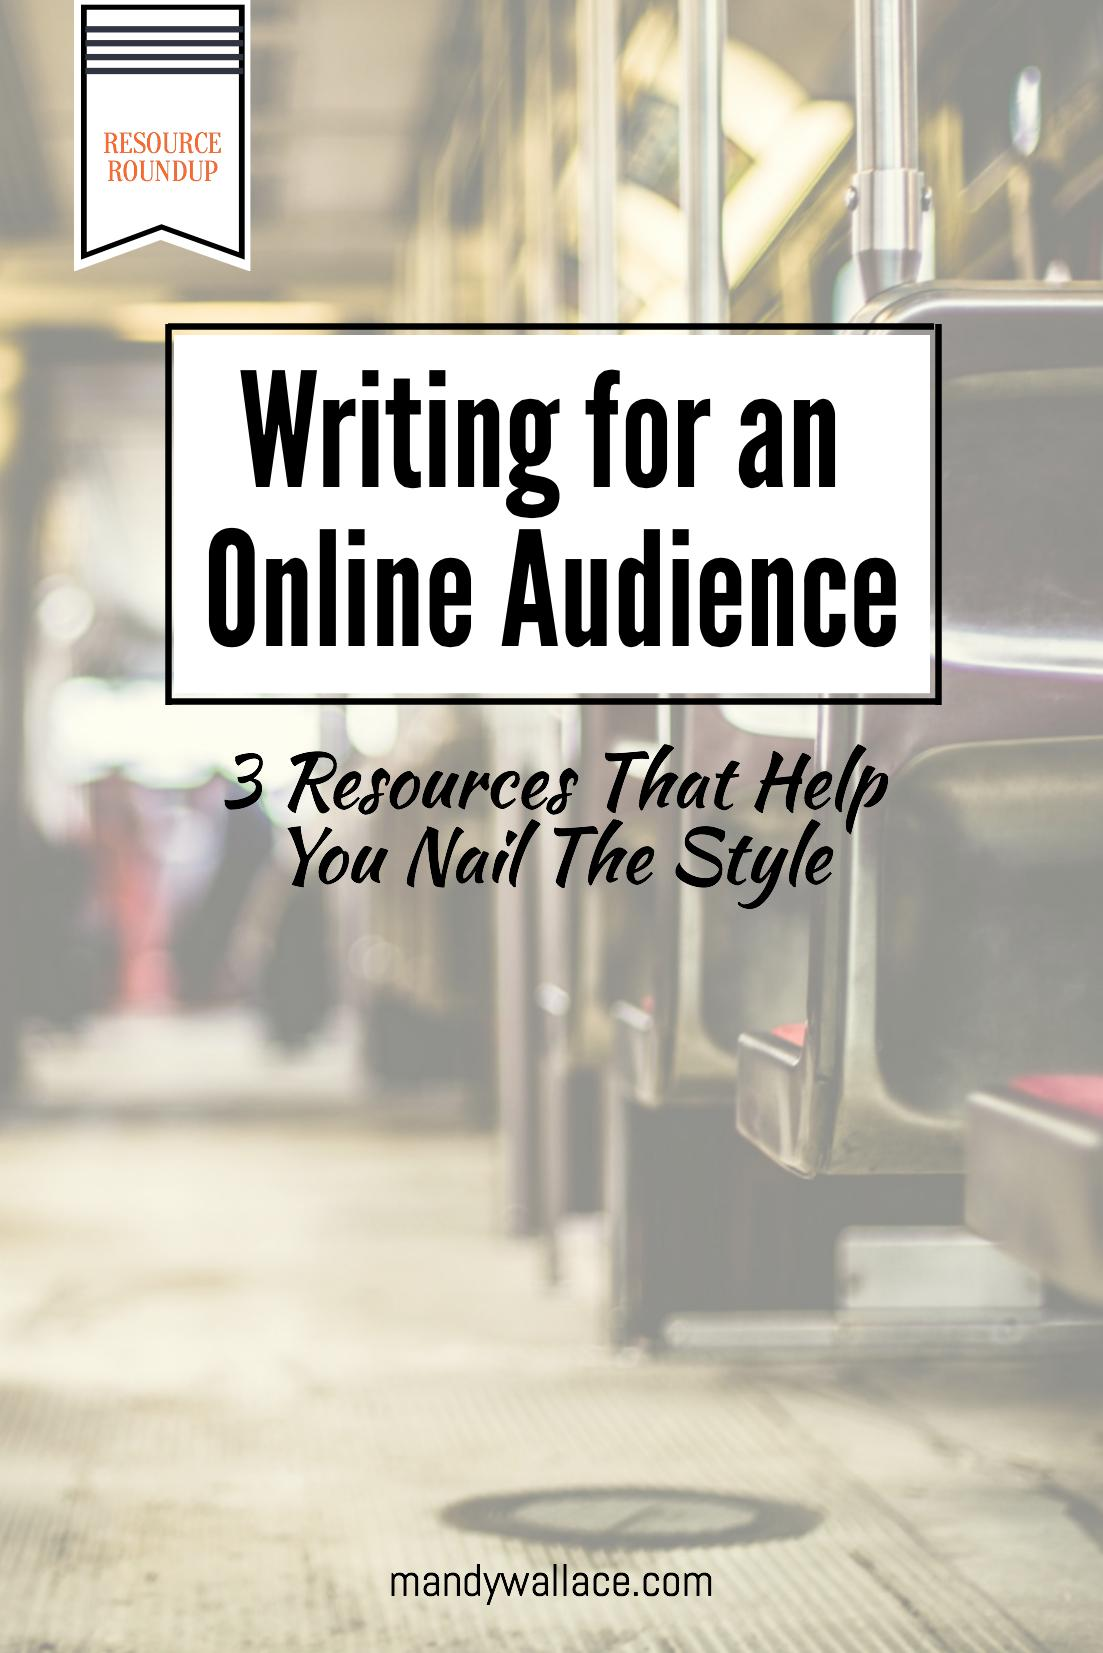 Writing for an Online Audience: 3 Resources That Help You Nail The Style